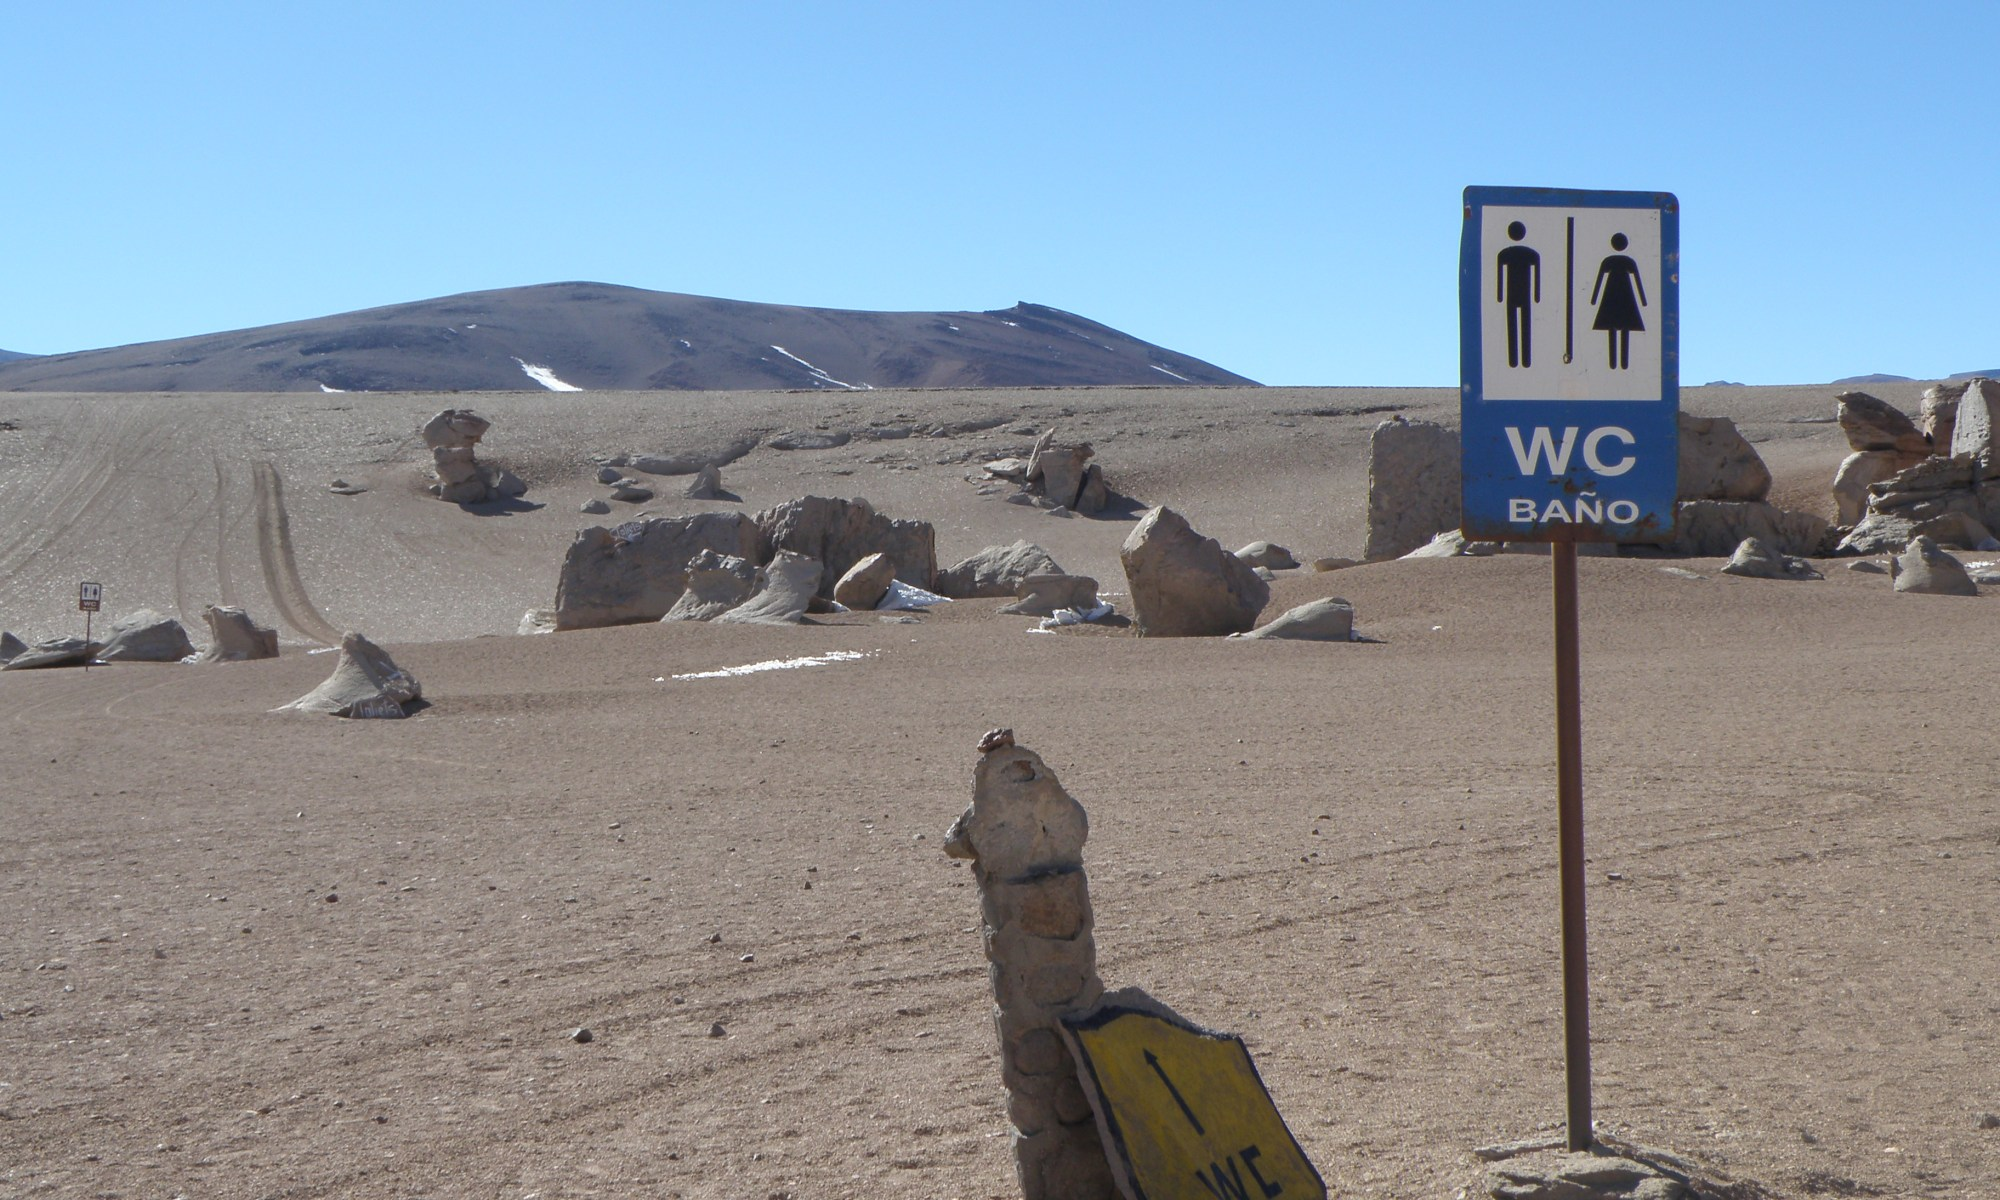 Toilet sign in Atacama Desert, Chile